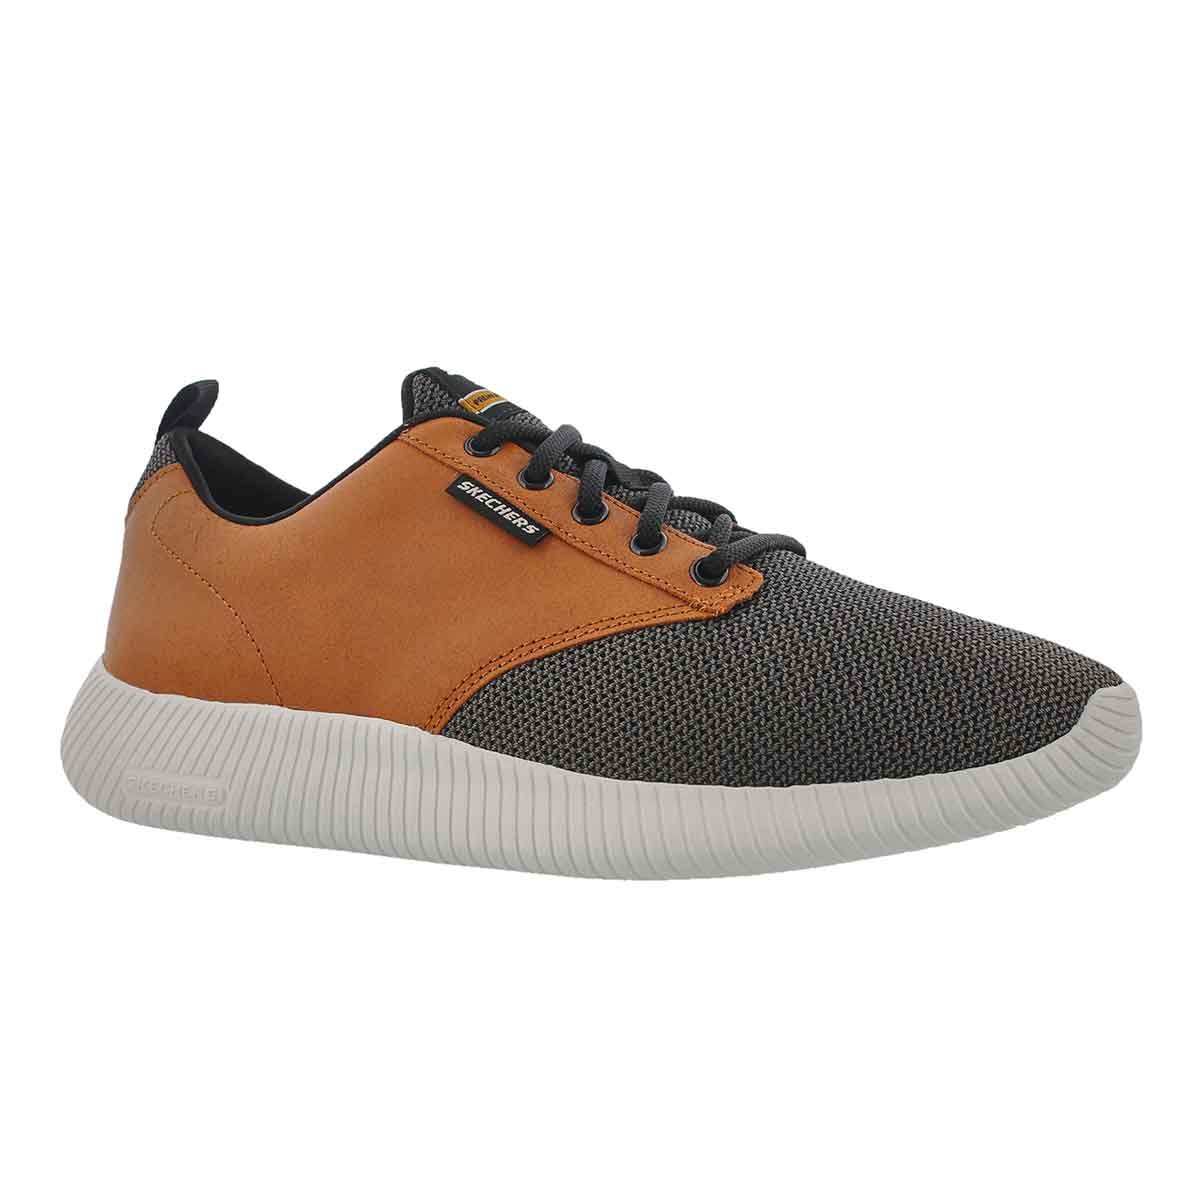 Mns Depth Charge Trahan brn/blk sneaker